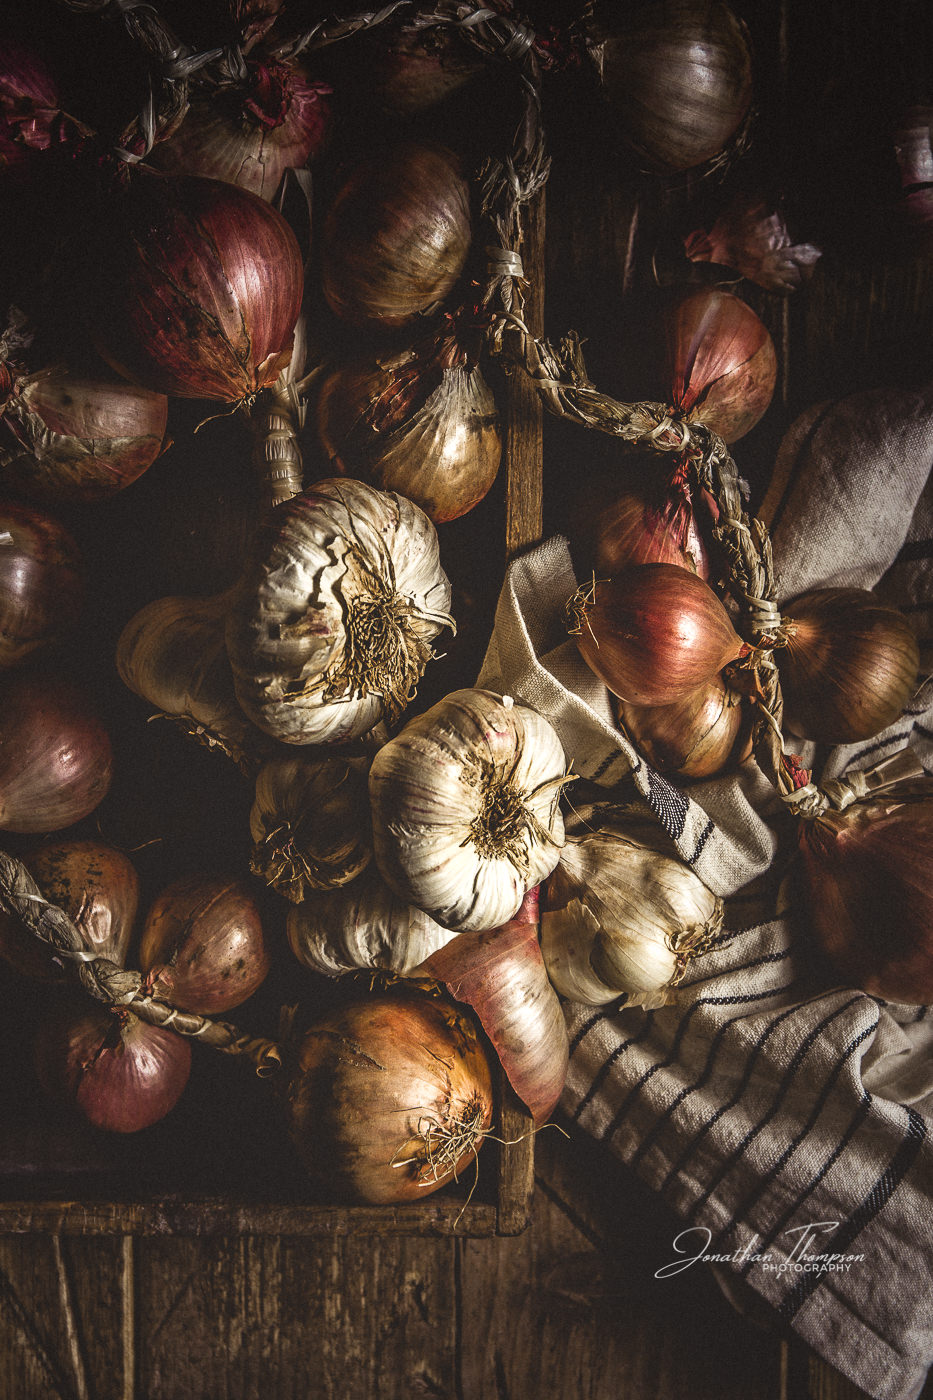 A fine art photograph from personal projects of onions and garlic in their rustic state with lots of textures and soft light.